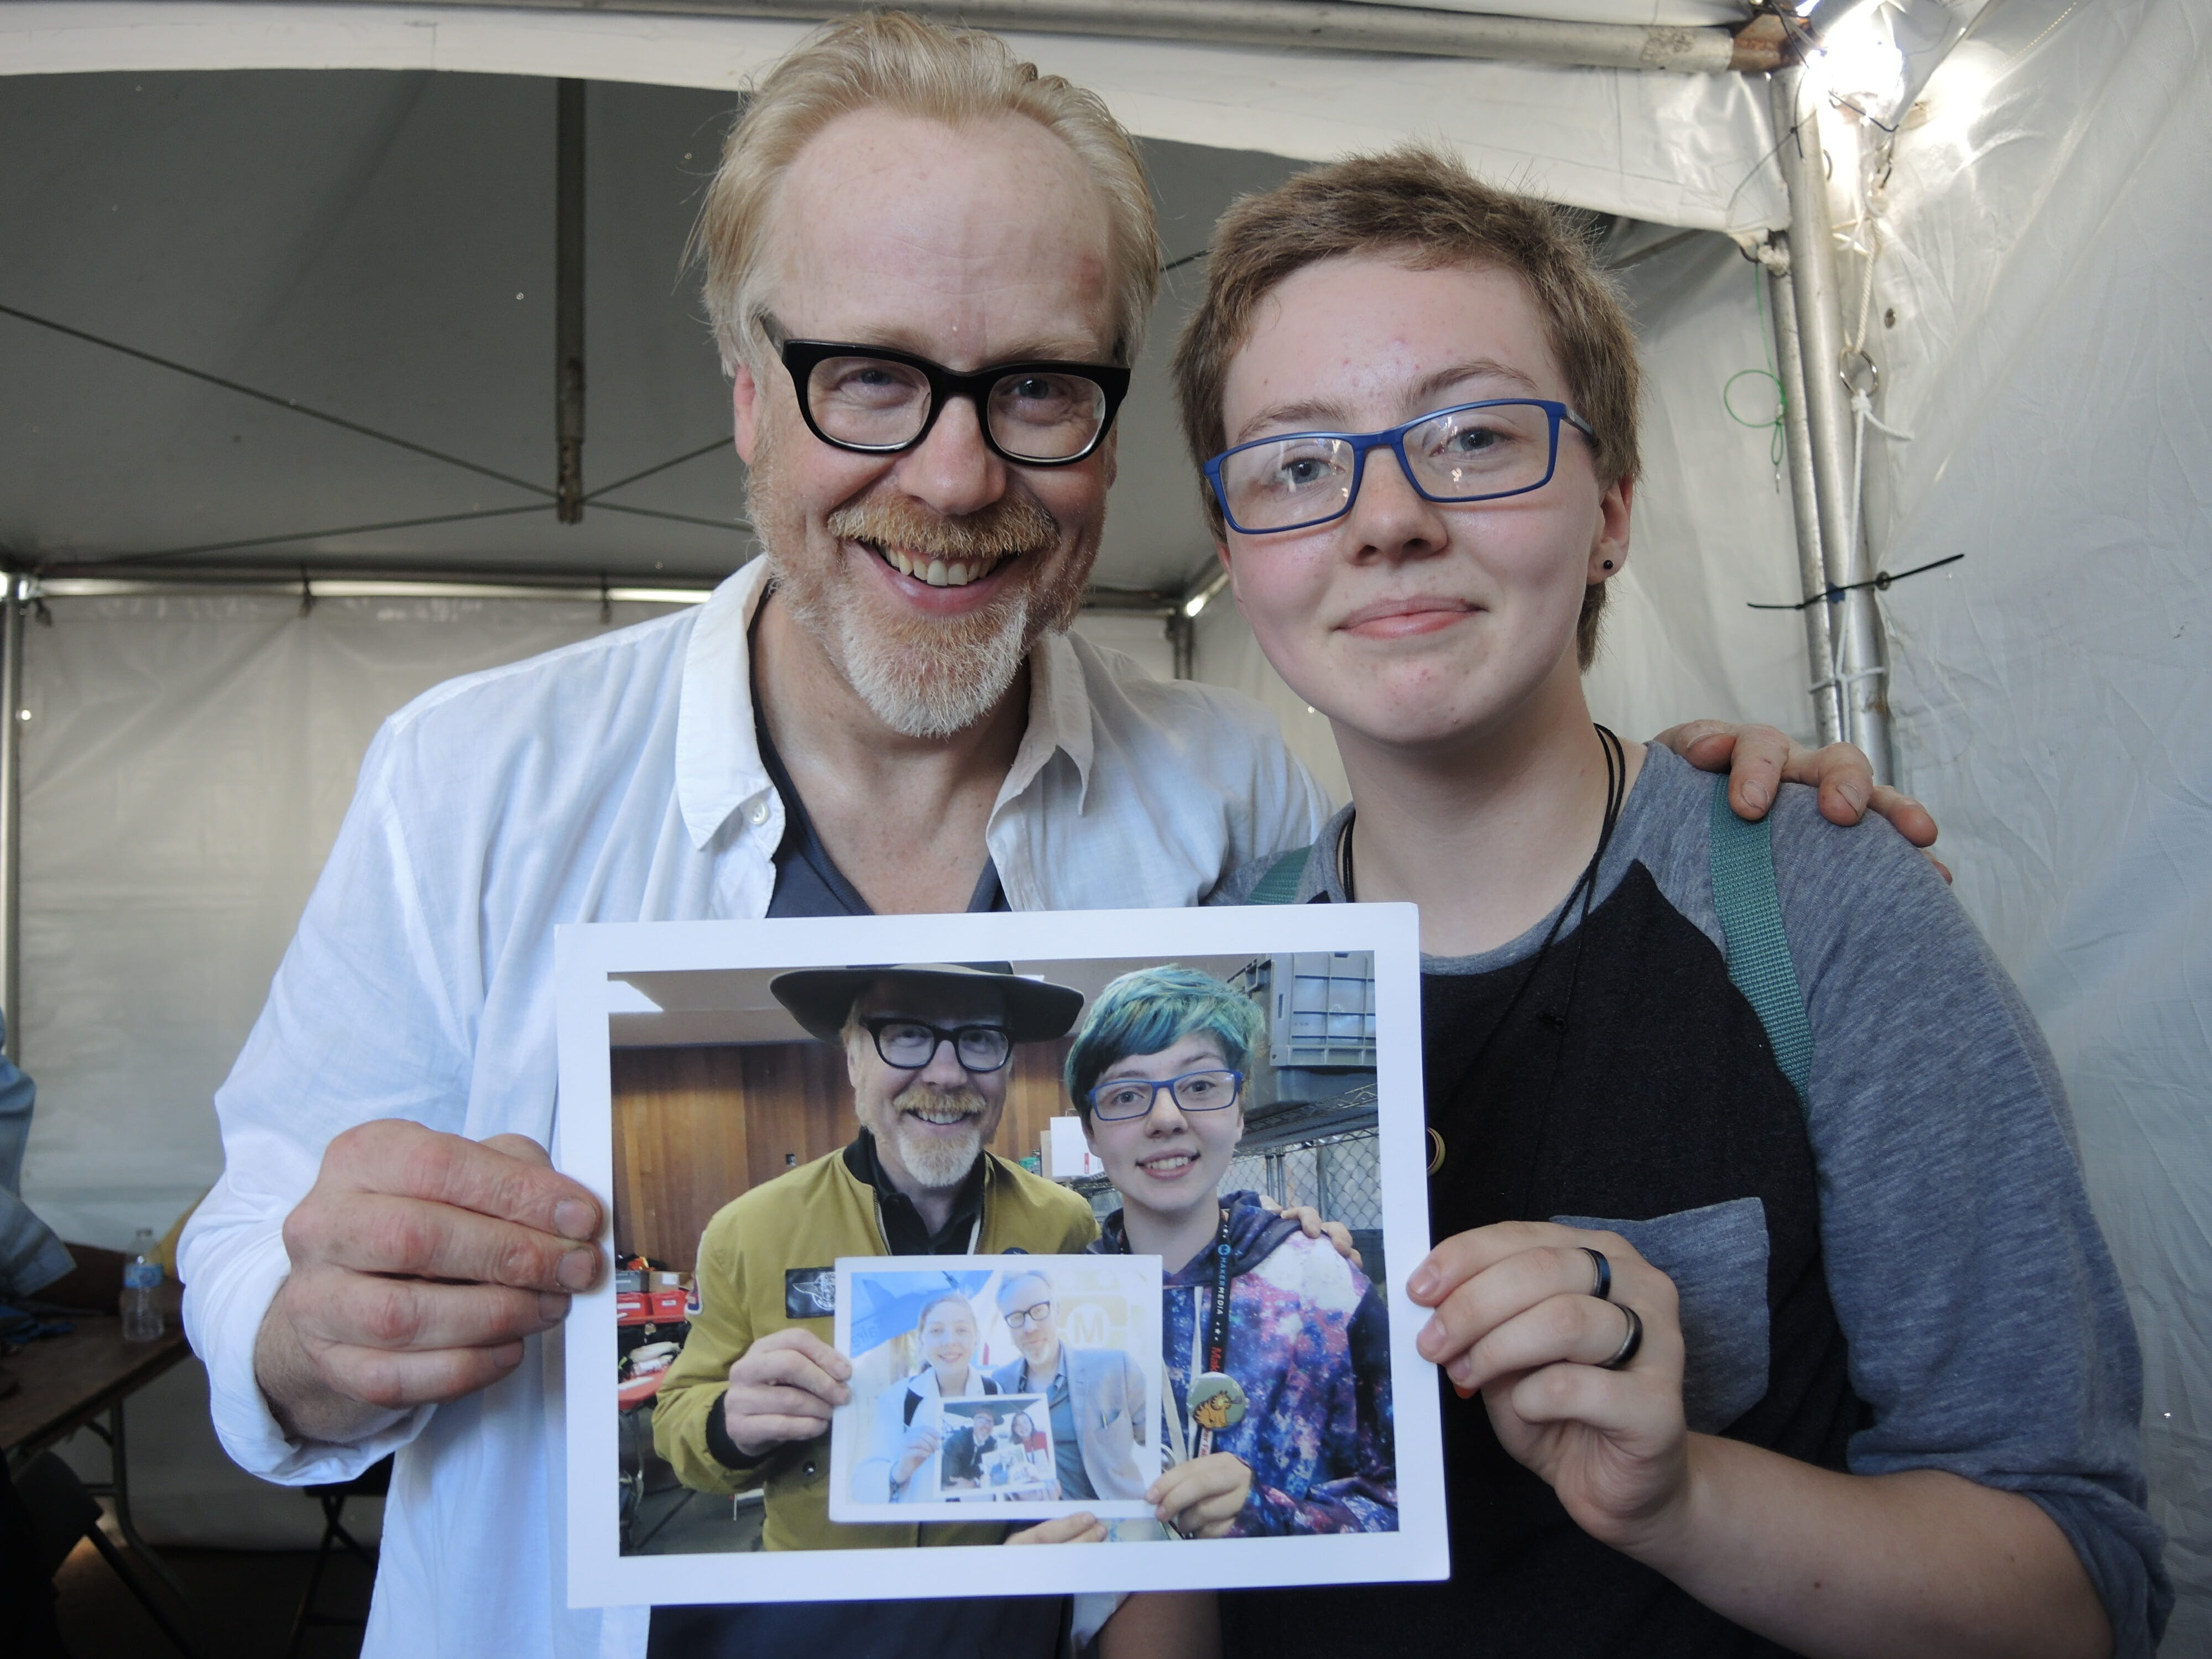 mythbusters fan inception photo